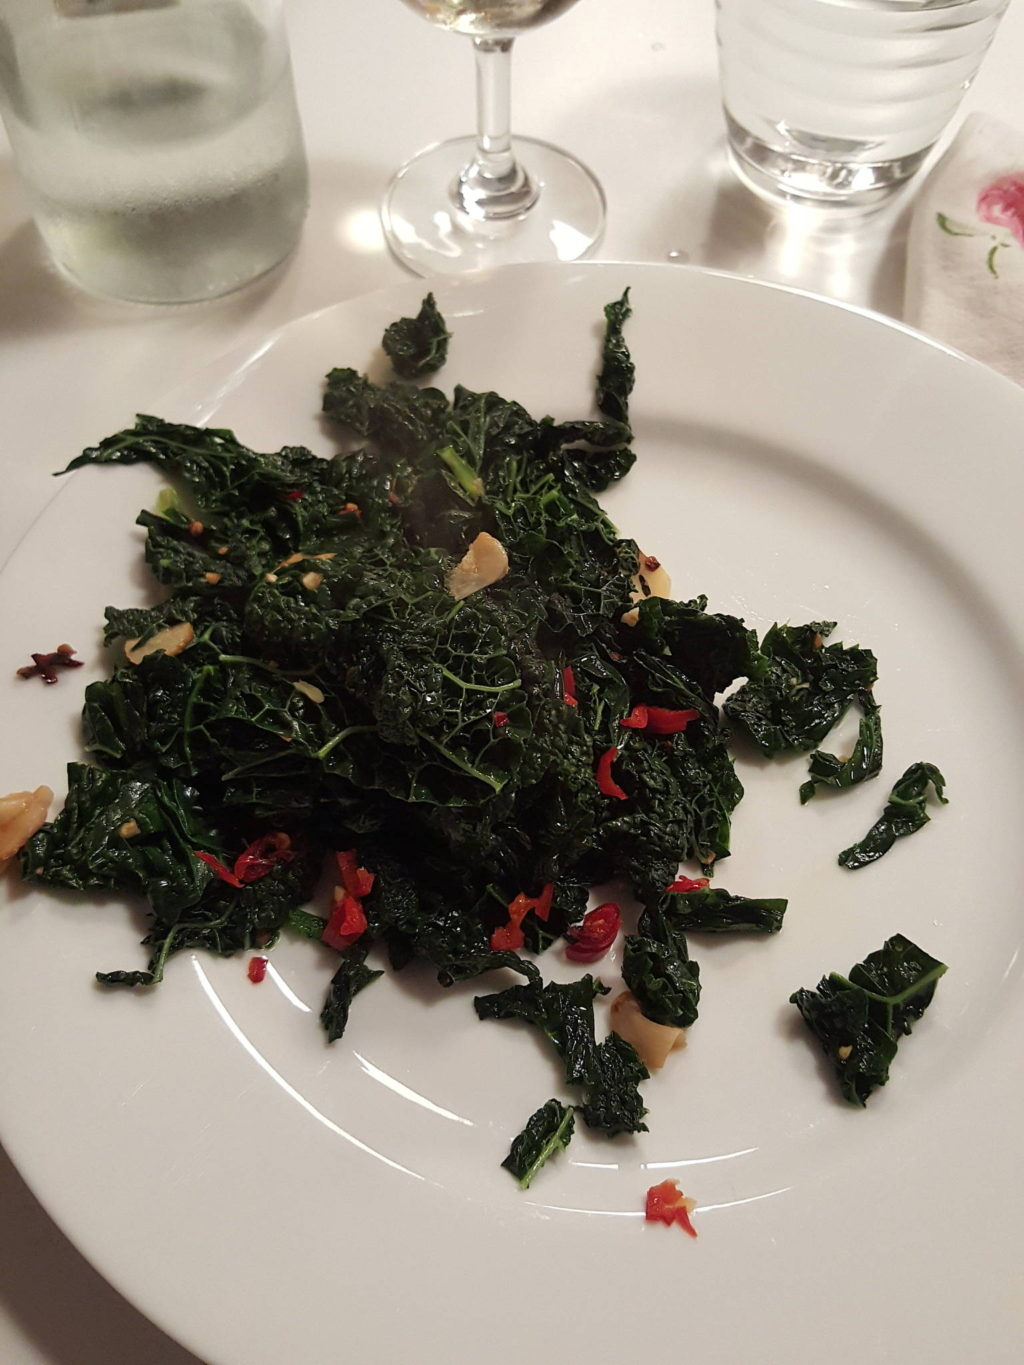 Cavolo nero on the plate